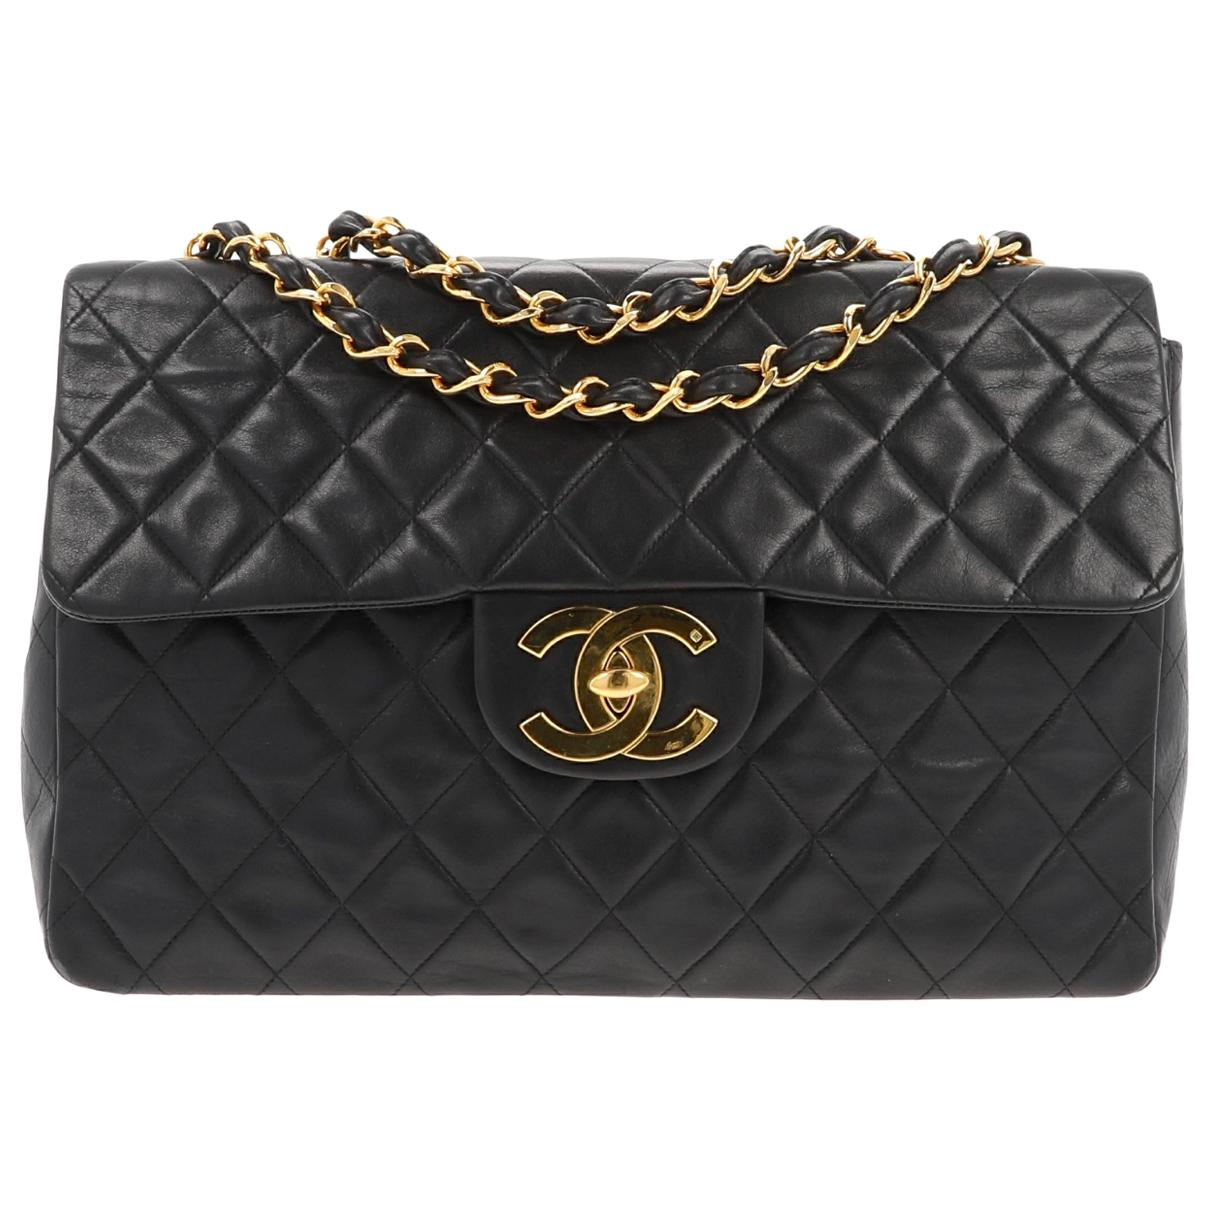 Chanel Pre-owned - Timeless leather handbag ieF7rfUT